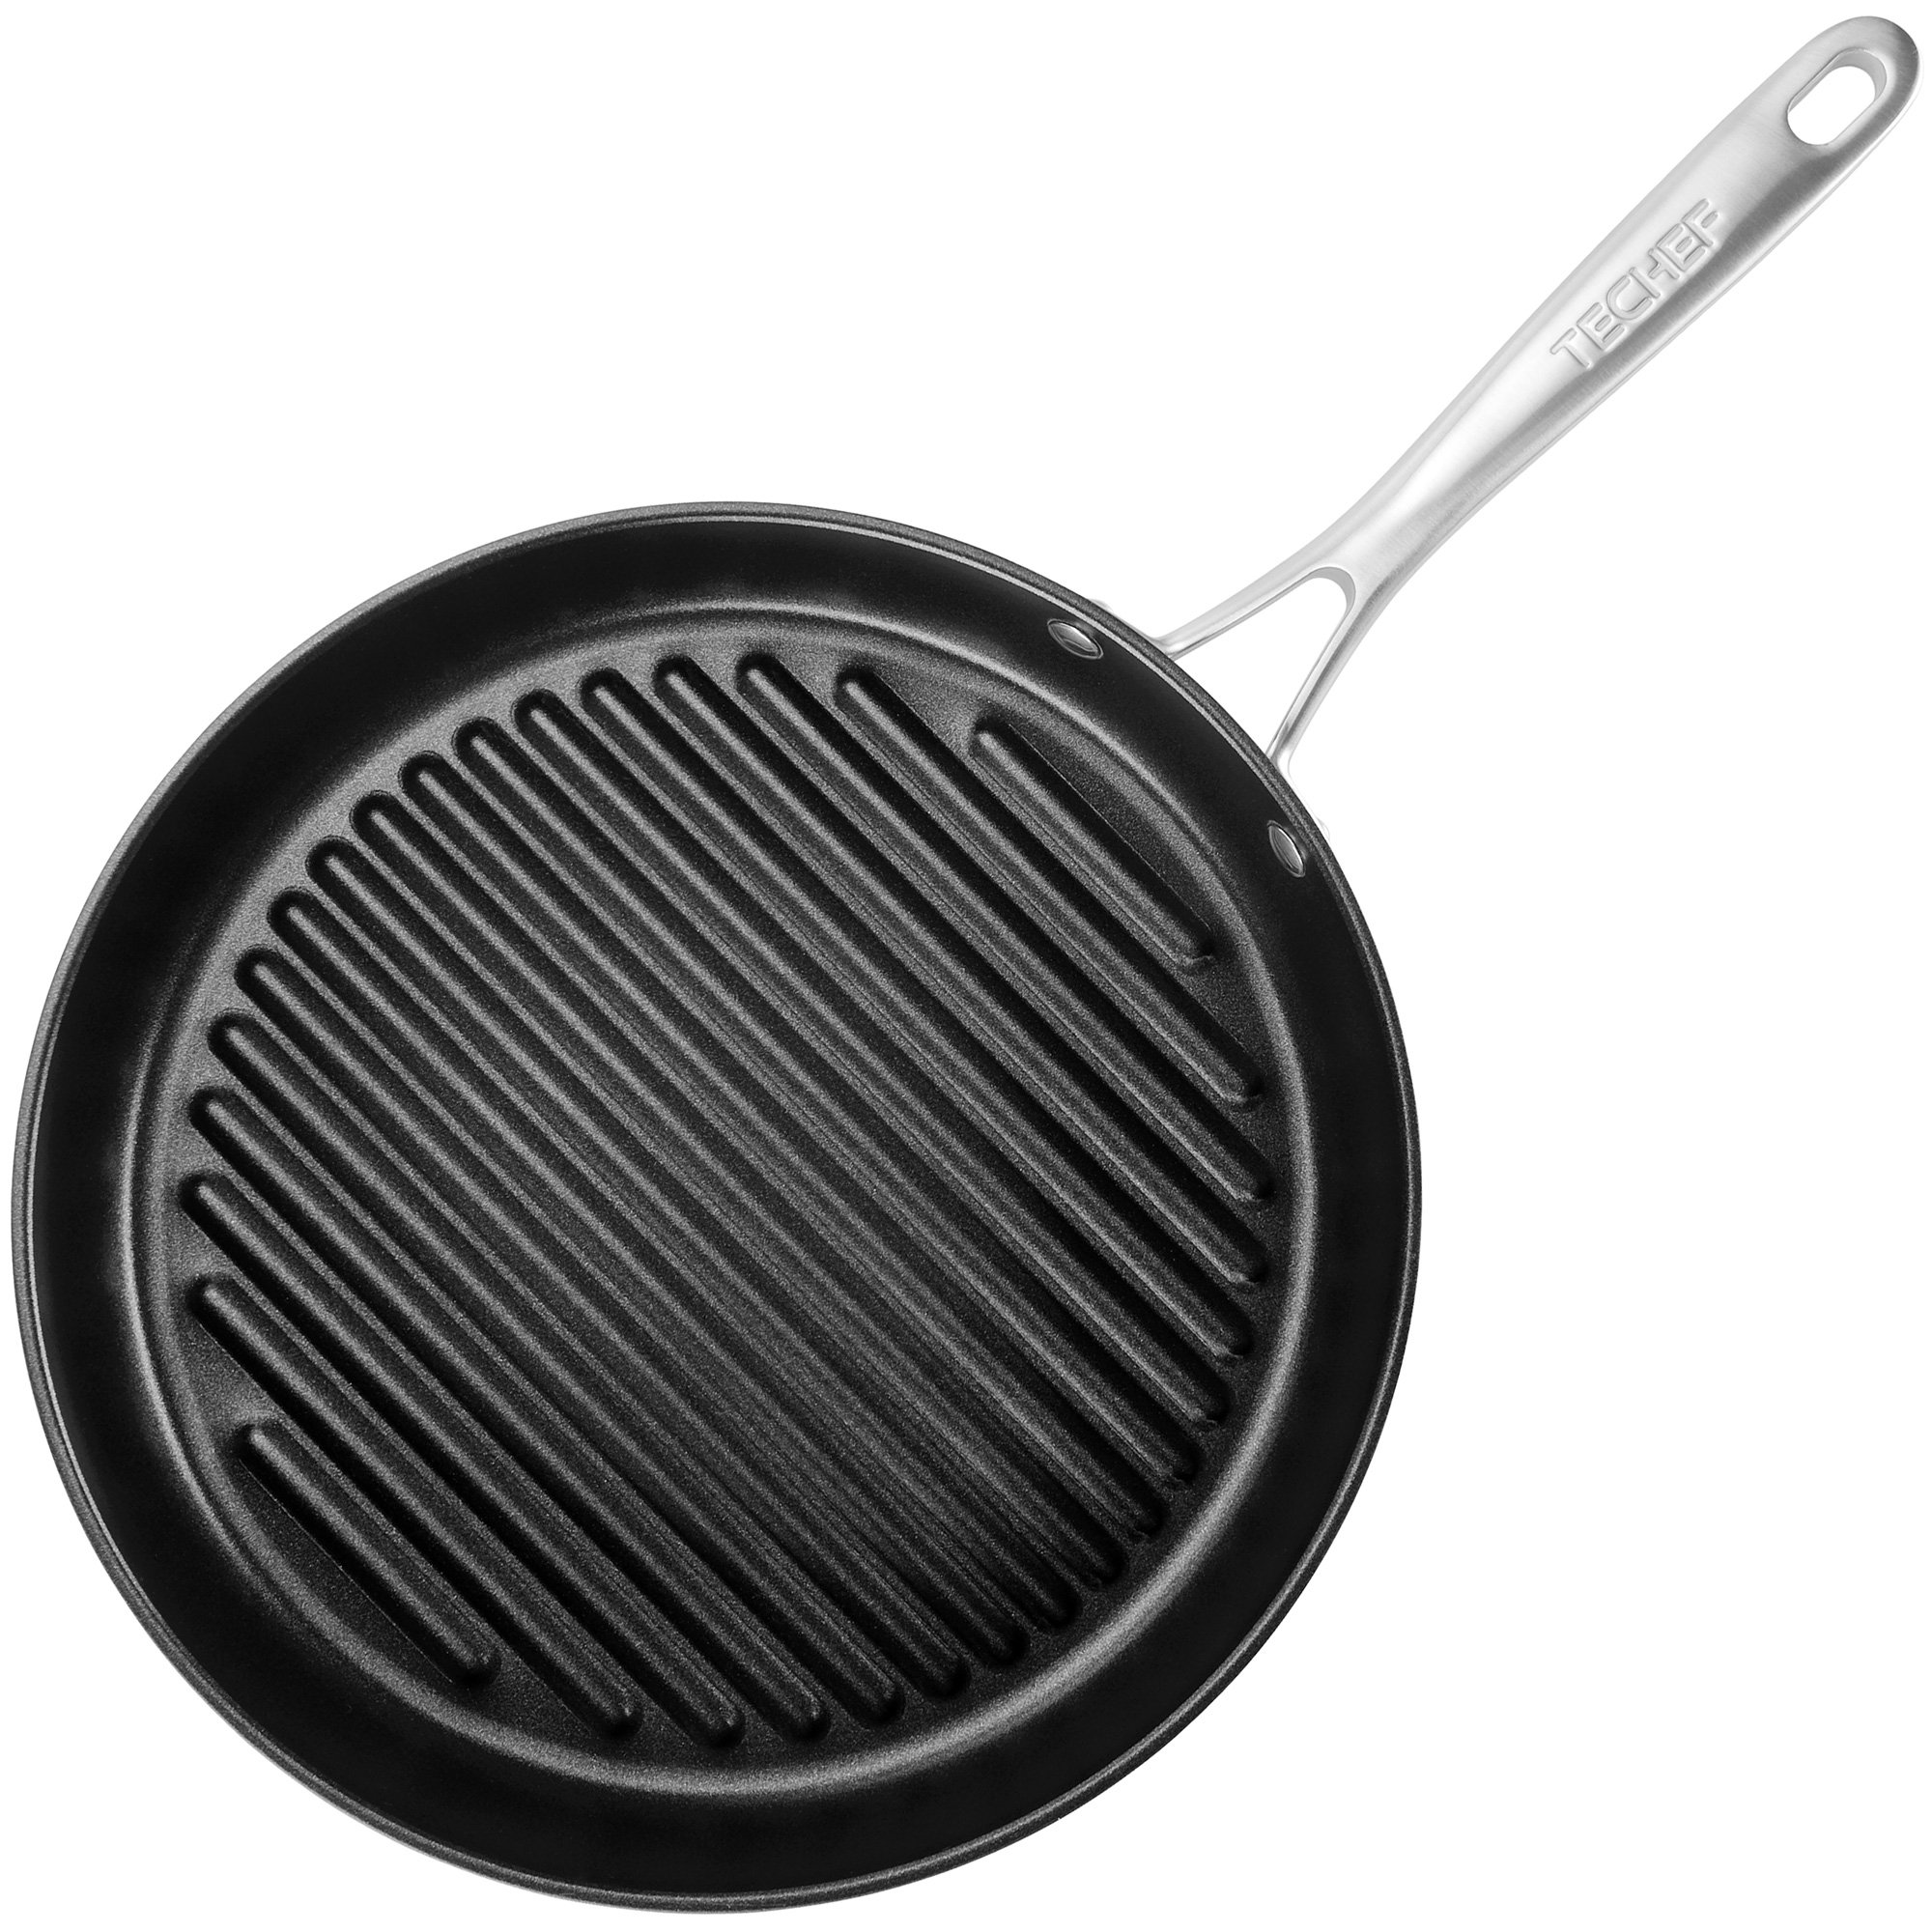 TECHEF OXGP Onyx Collection 12'' Grill Pan New Teflon Platinum Non-Stick Coating (PFOA Free), Made in Korea'', Black by TECHEF